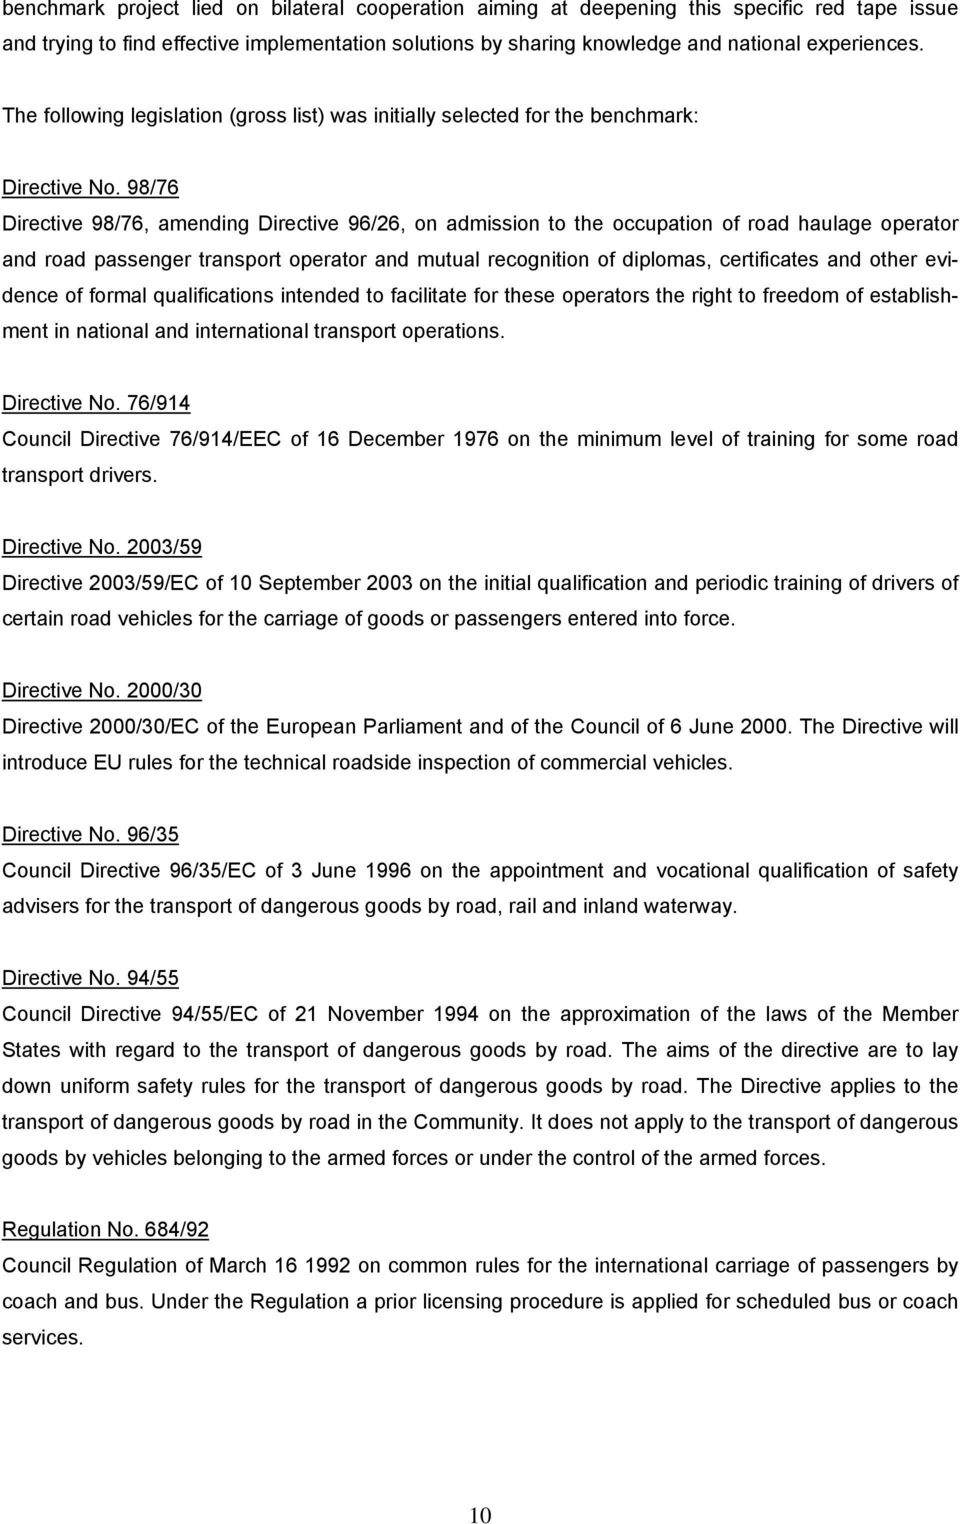 98/76 Directive 98/76, amending Directive 96/26, on admission to the occupation of road haulage operator and road passenger transport operator and mutual recognition of diplomas, certificates and